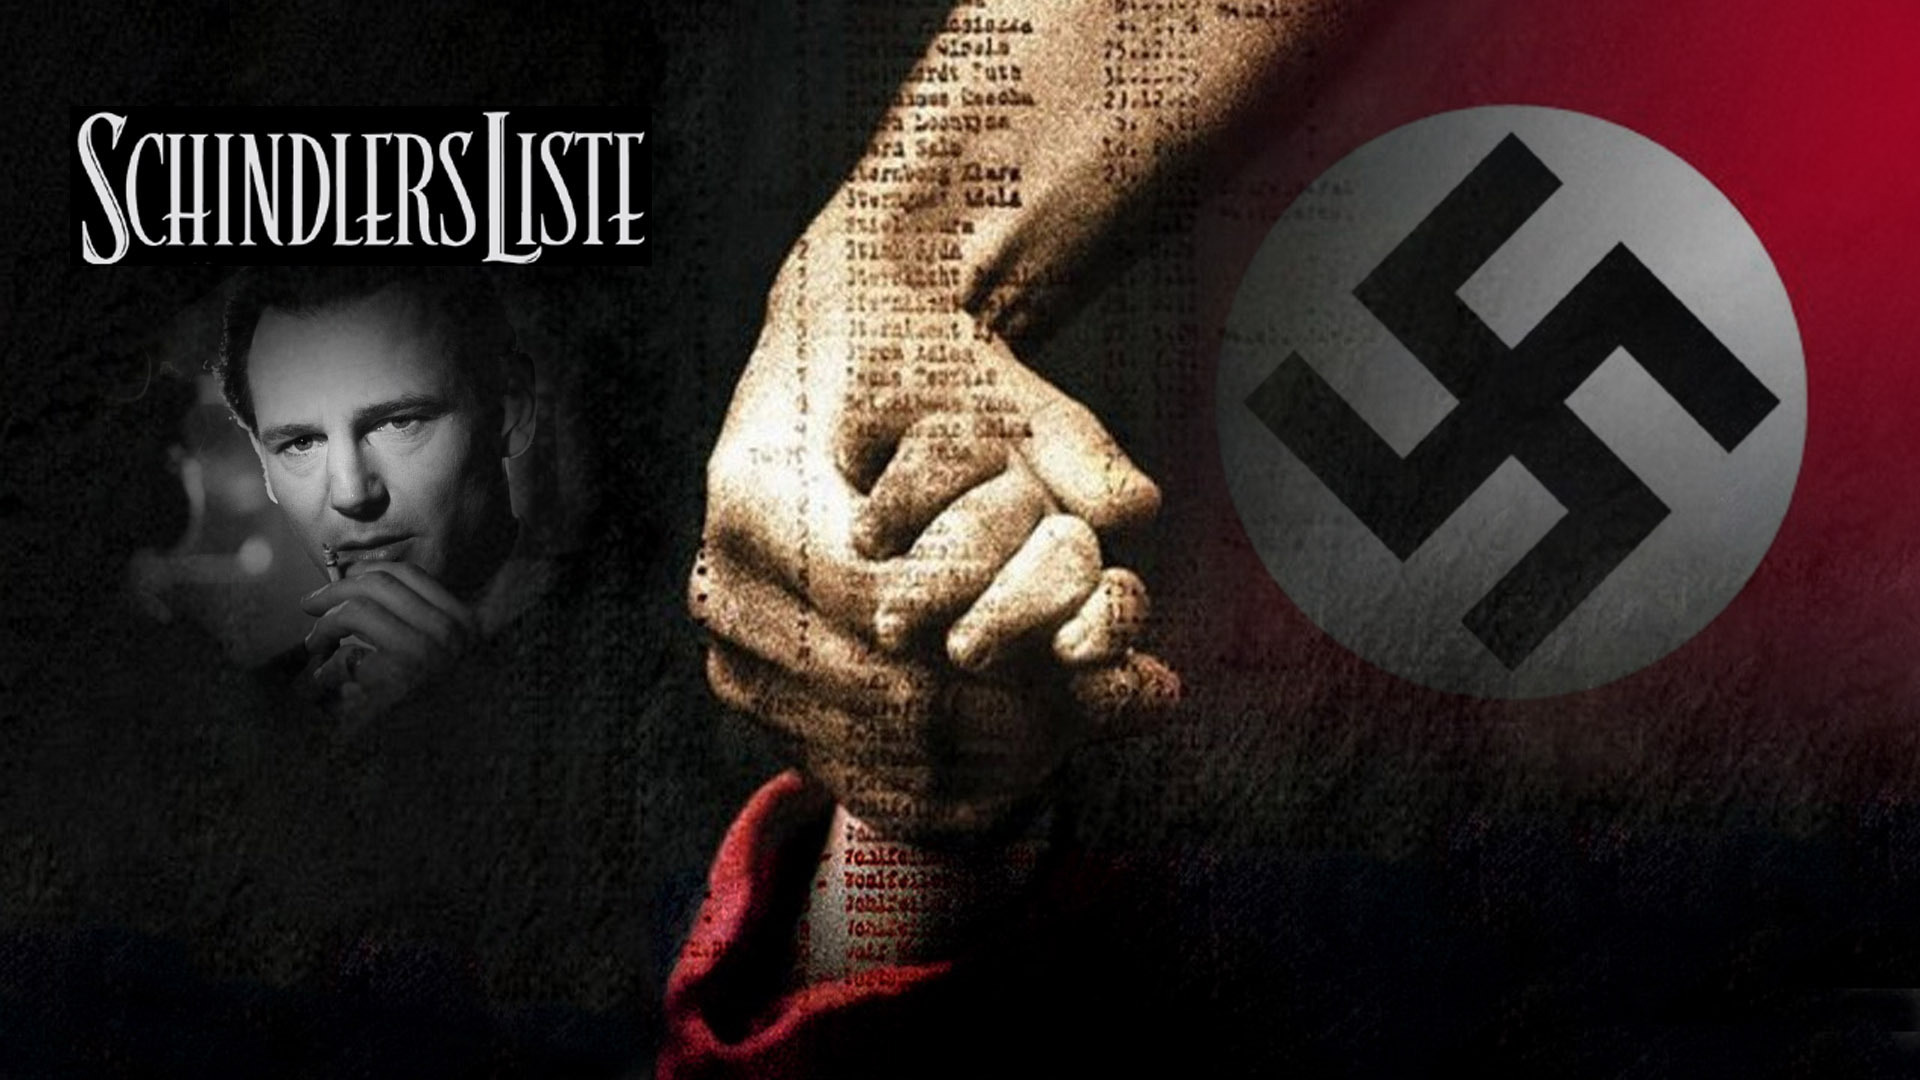 schindlers-list-lista-schindlera-lektor-online-pictures-trailer-soundtrack-images-photos-video-free-pl-napisy-zdjecia-liam-neeson-steven-spielberg-1993-oskar3_8987